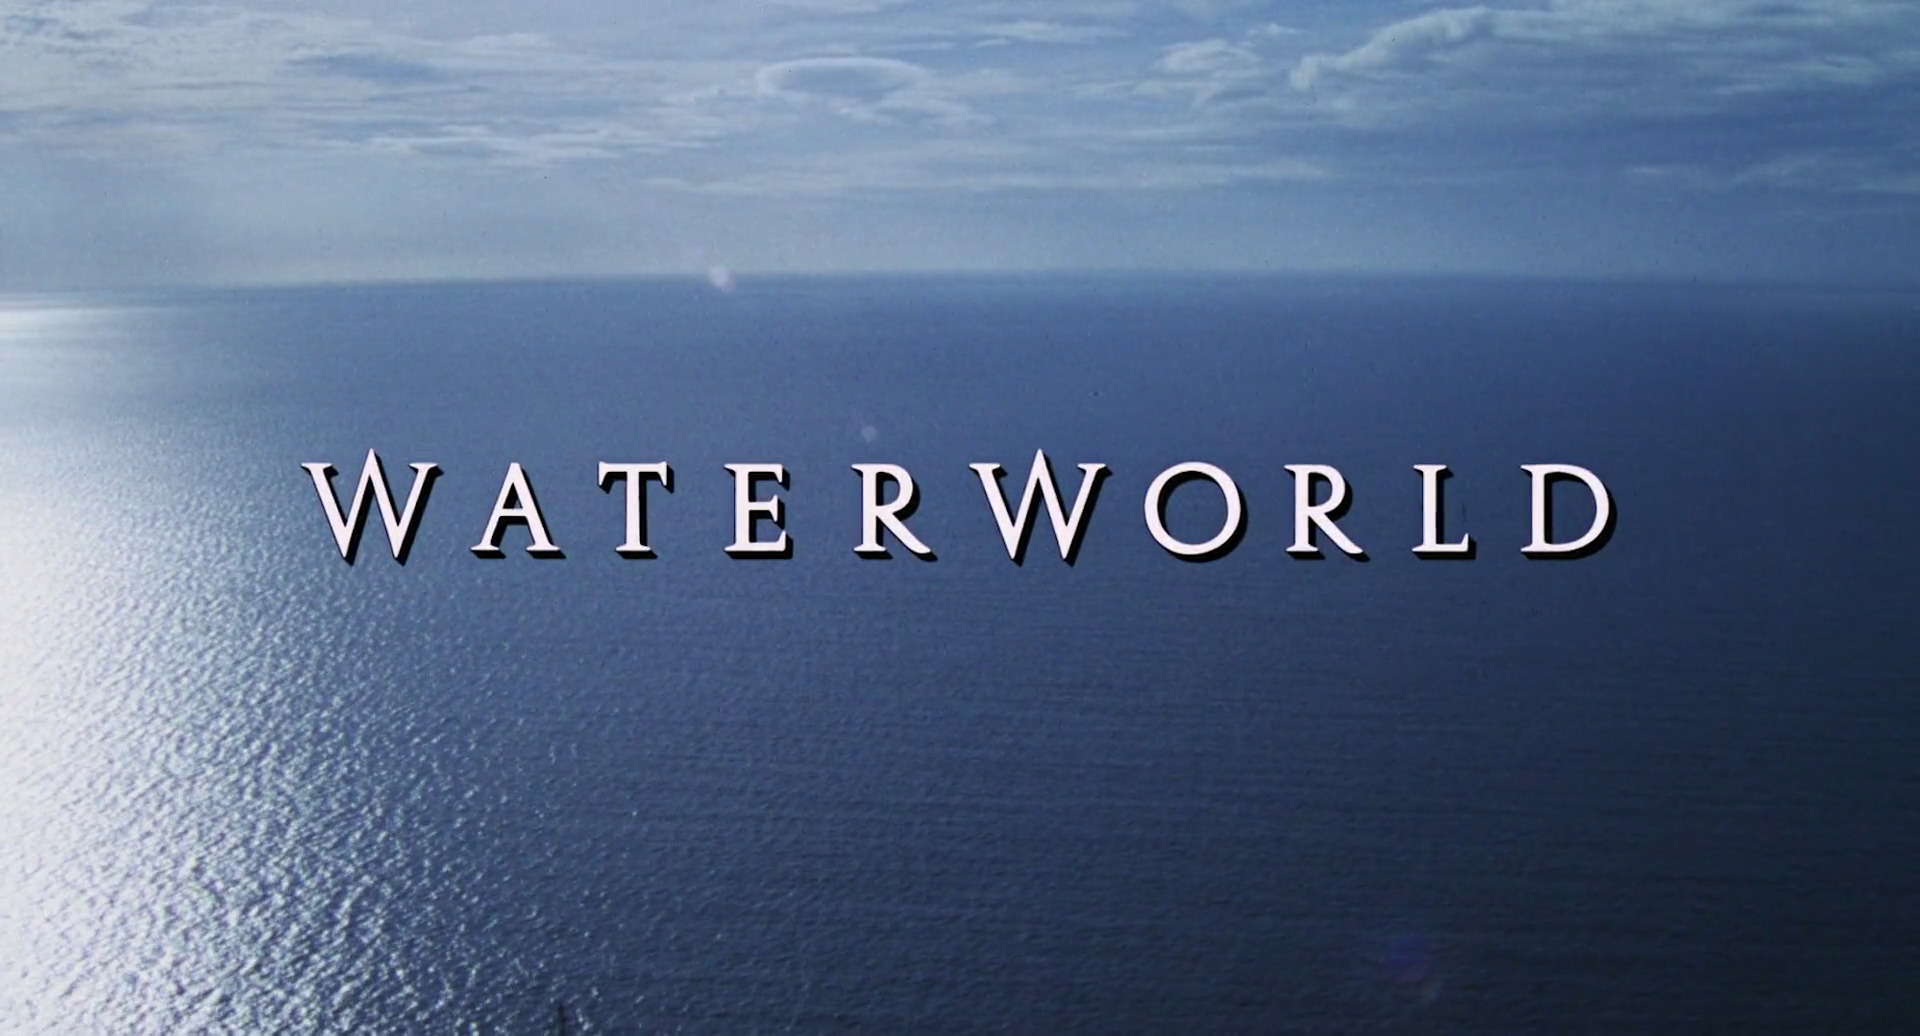 Waterworld (1995) [The Ulysses Cut]